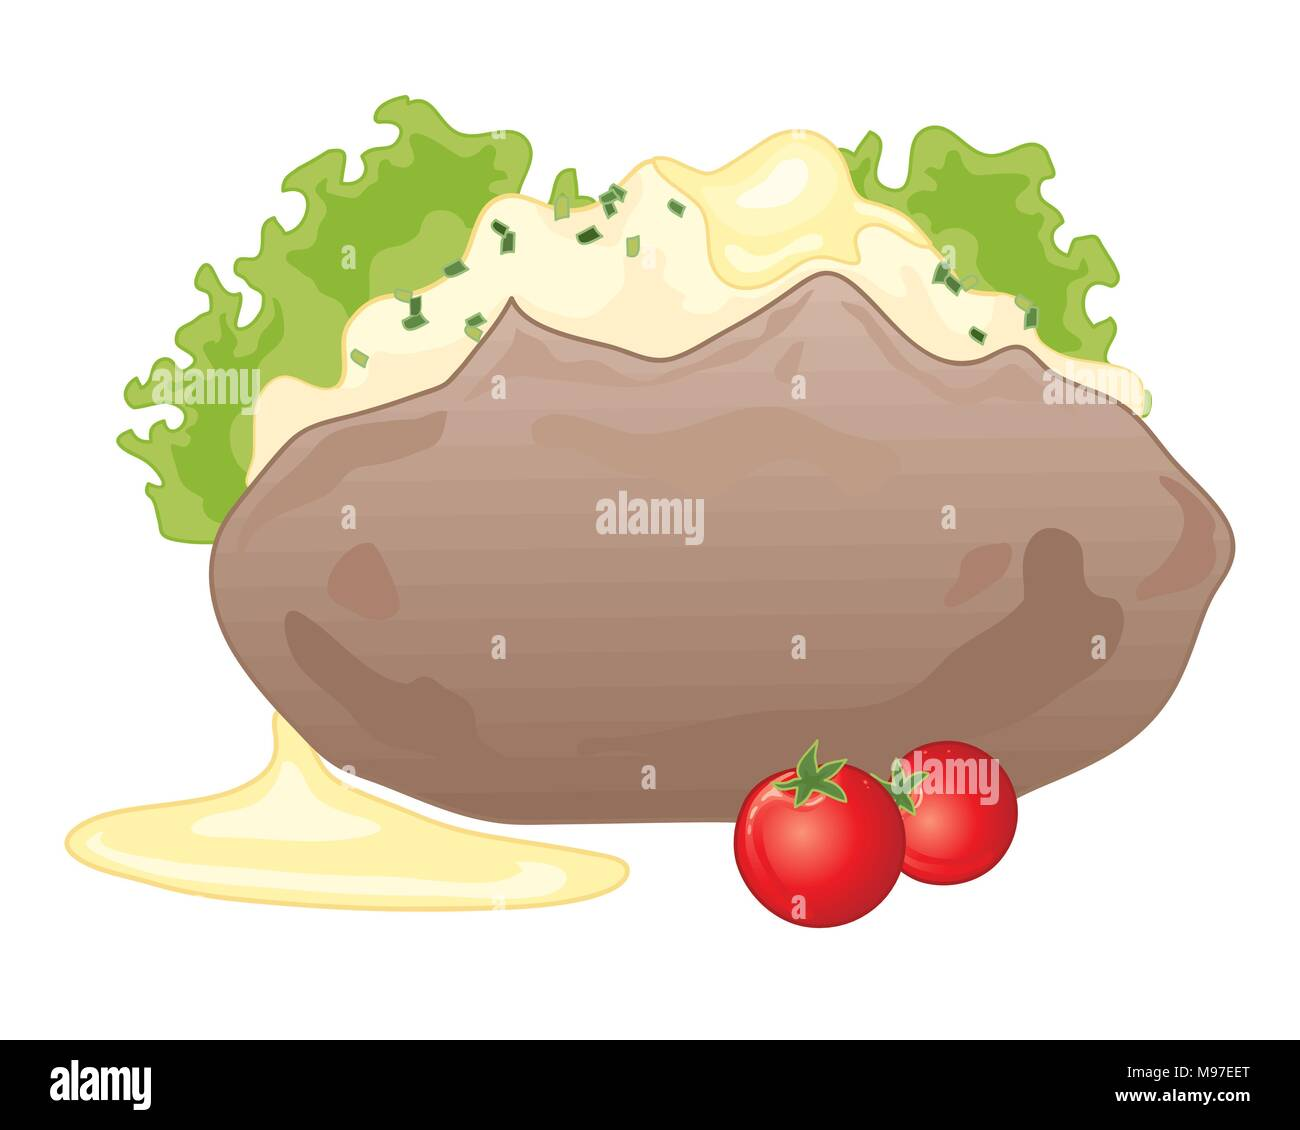 a vector illustration in eps 10 format of a baked jacket potato with butter lettuce and tomato isolated on a white background - Stock Vector